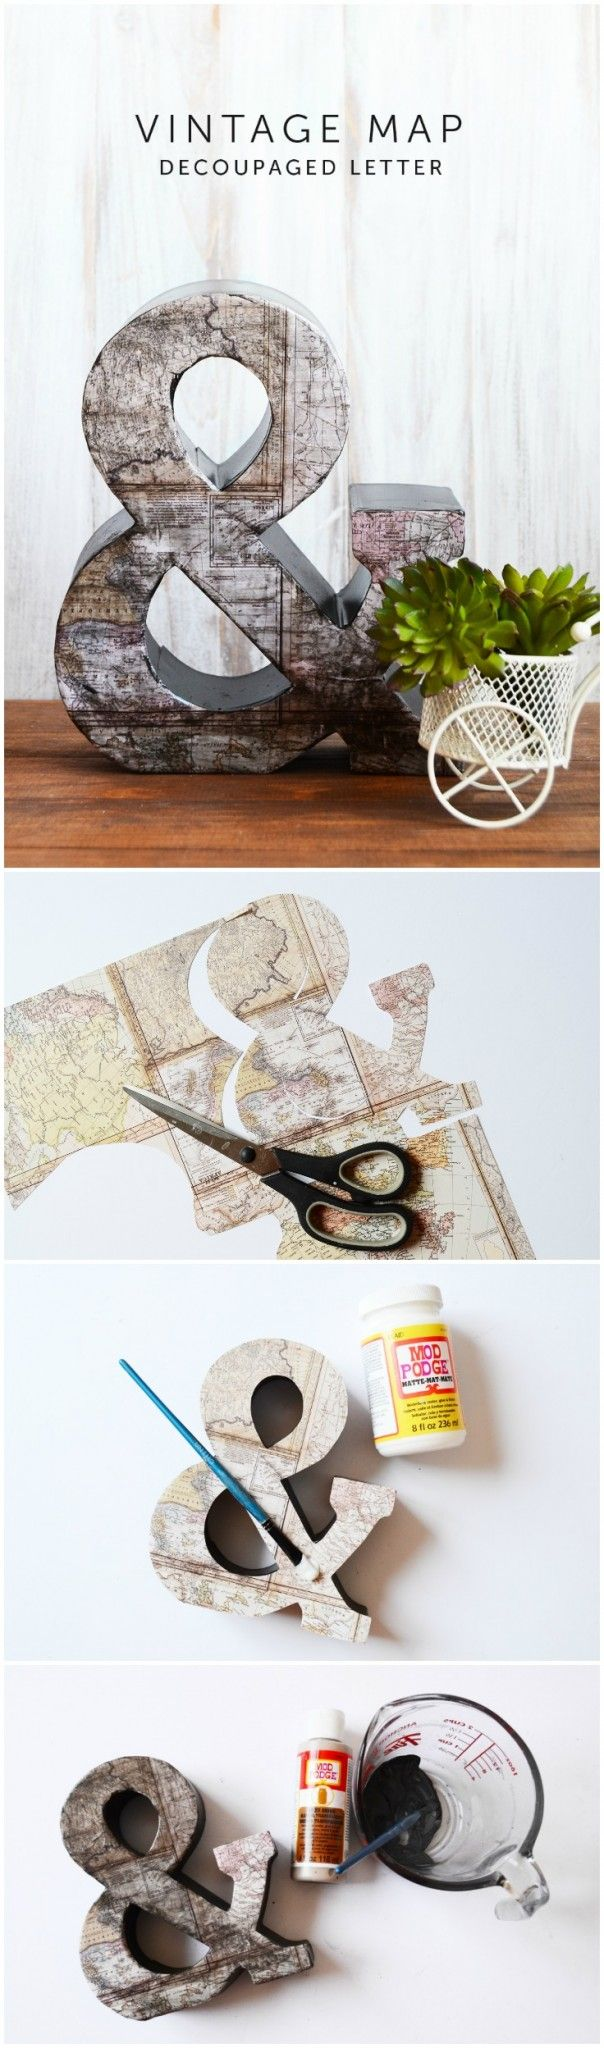 Use Mod Podge, paint, and map scrapbook paper to make this unique decoupage letter for home decor. It's easy to create your own with a fun vintage effect! via @modpodgerocks